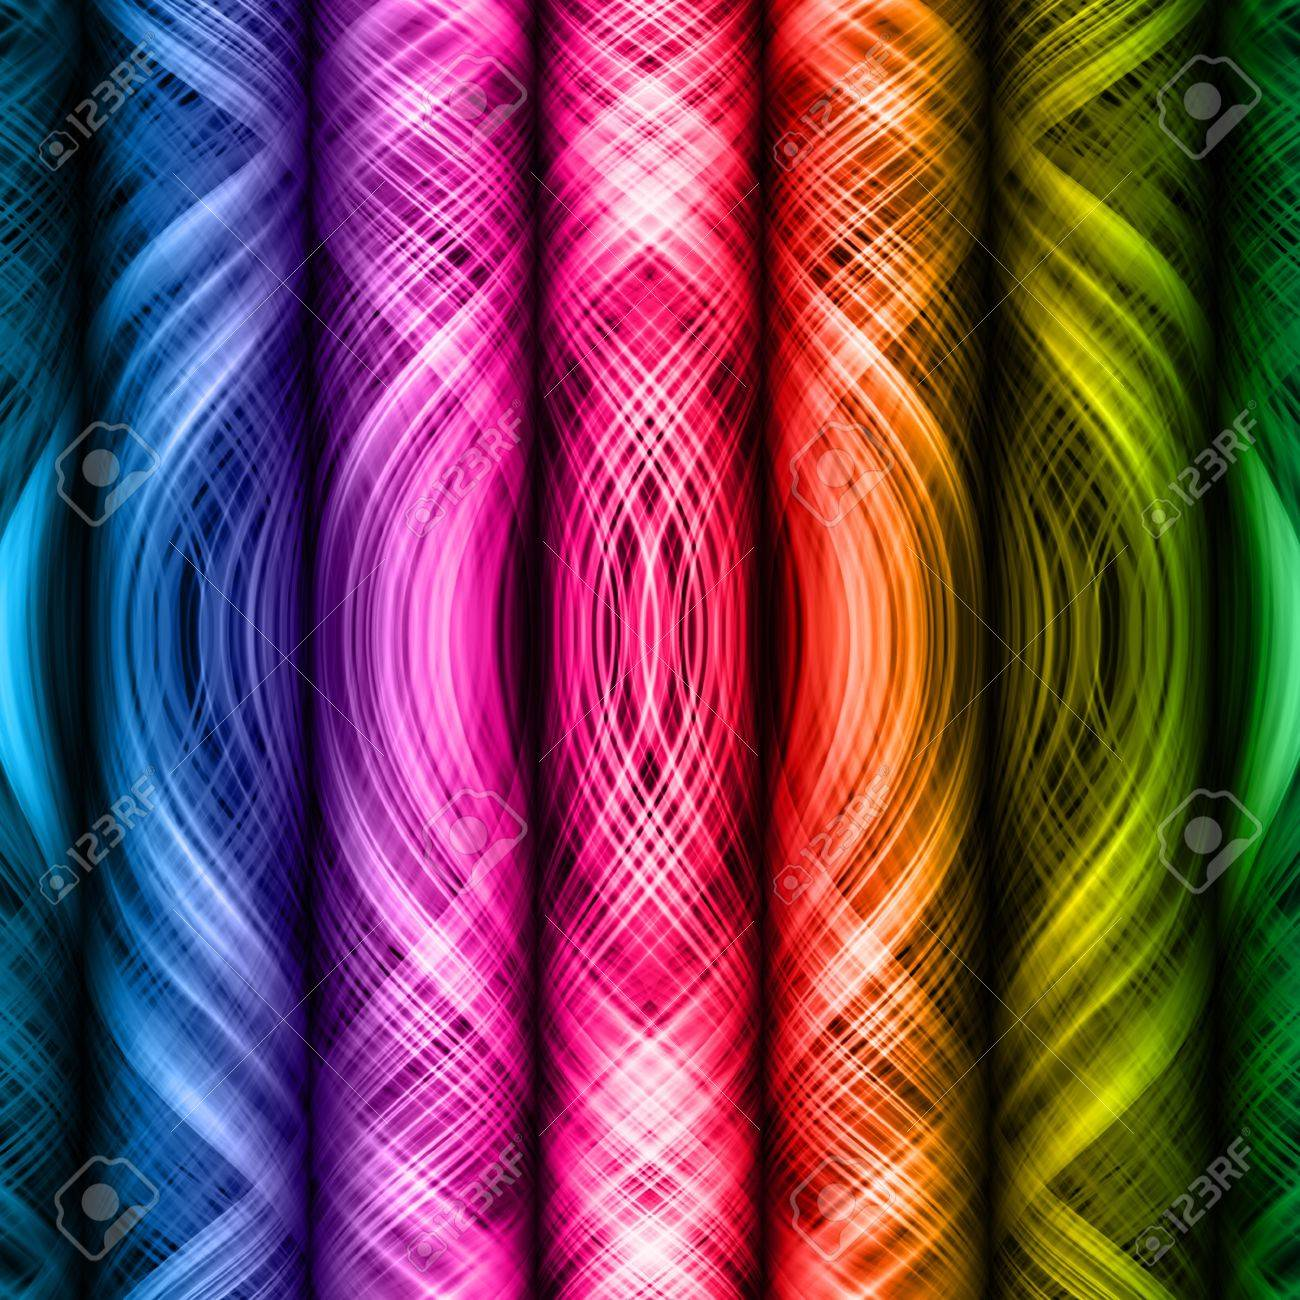 Wonderful abstract decorative stripe background design Stock Photo - 13376735